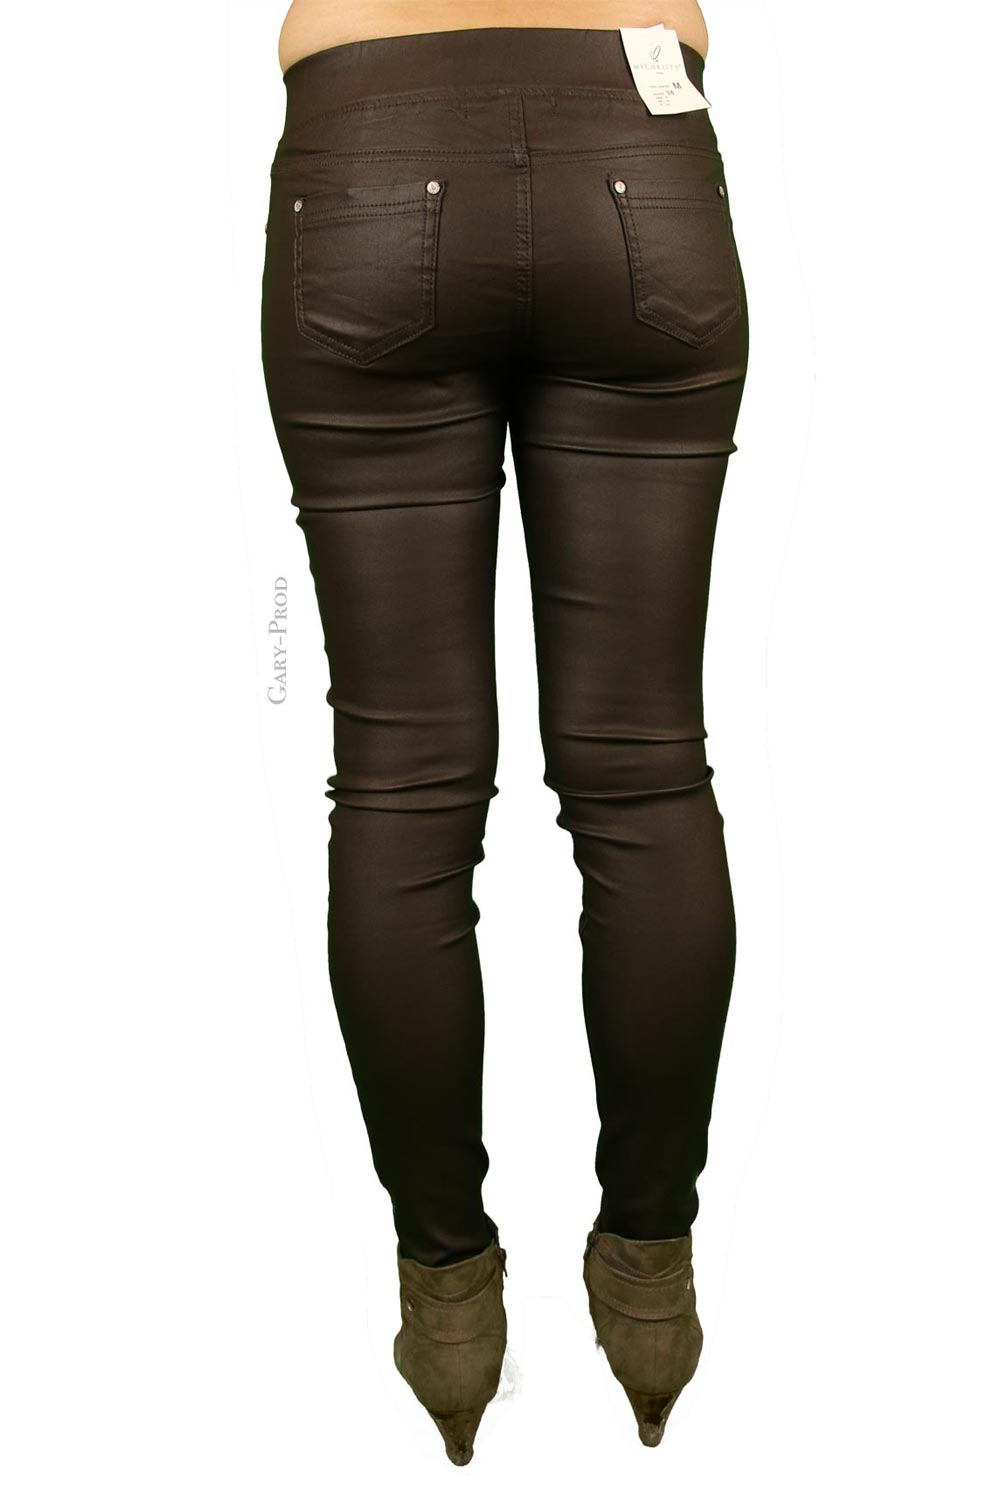 BM5017_5-38 - Pantalon huilé chocolat extra slim 'MY CHRISTY'